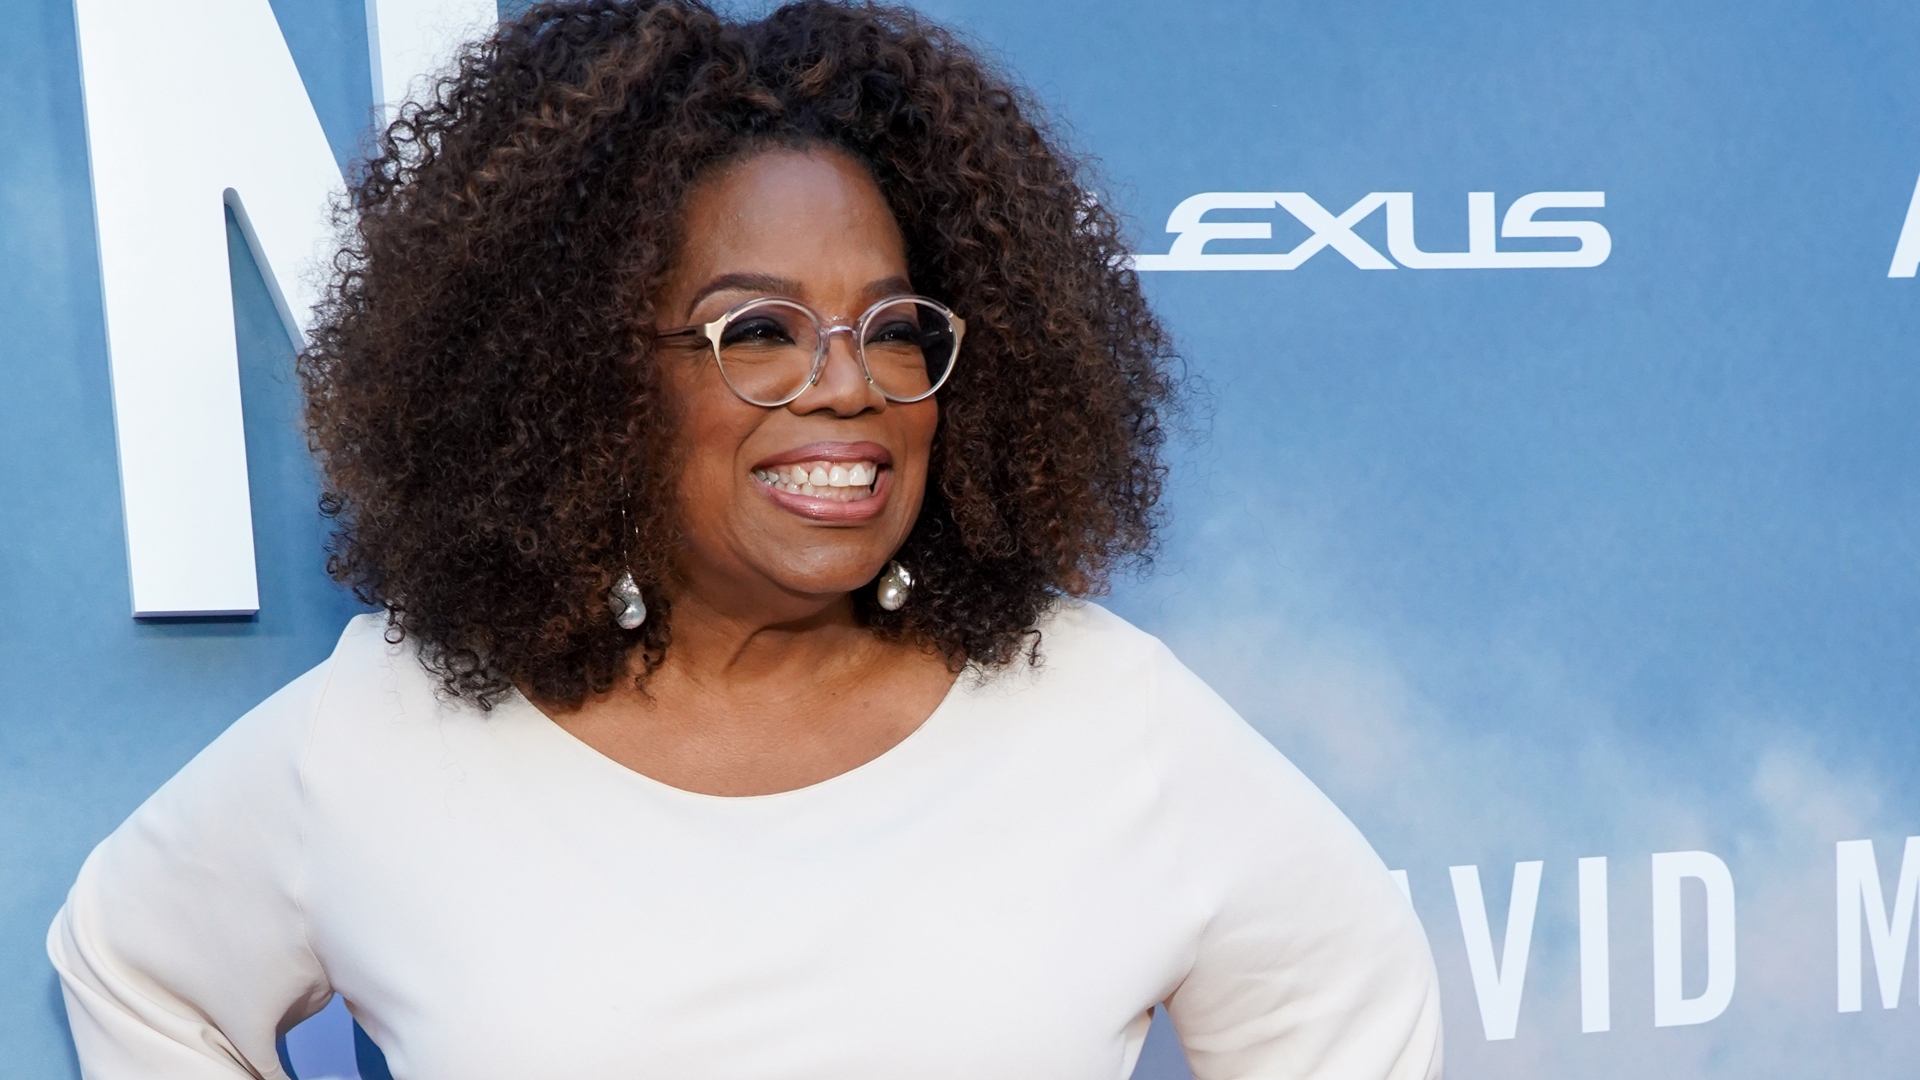 Oprah Winfrey is seen at NeueHouse Hollywood on August 6, 2019, in Los Angeles. (Credit: Rachel Luna/Getty Images)